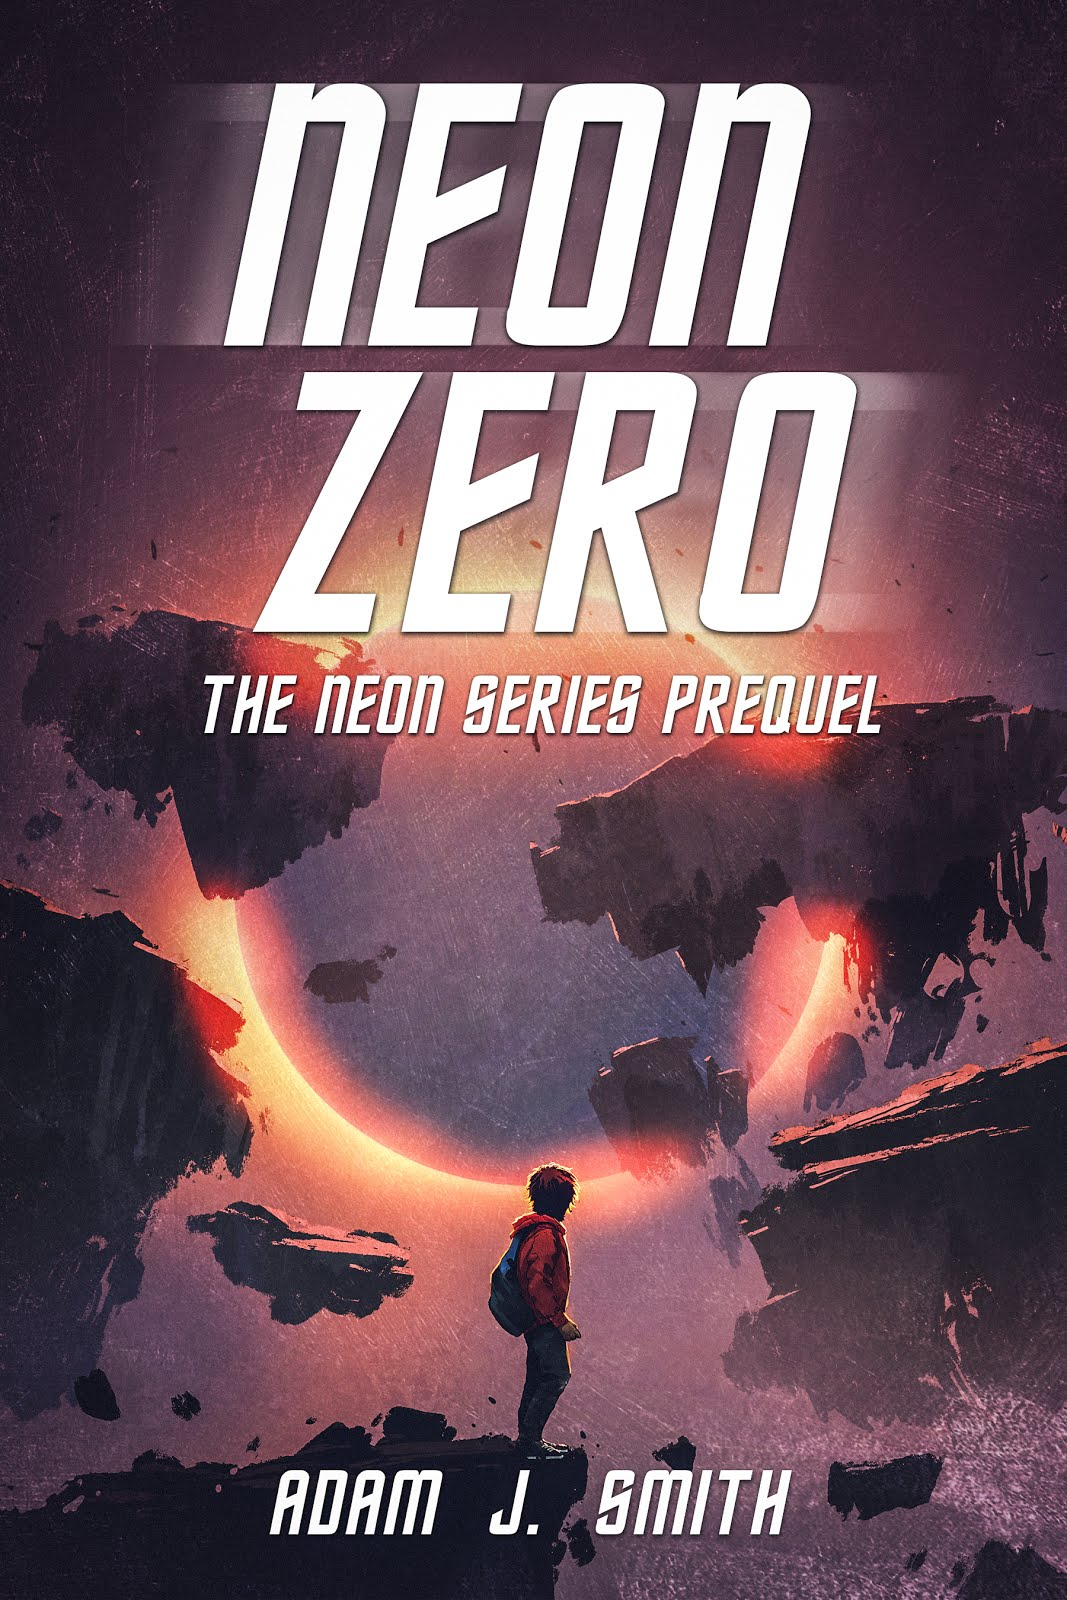 Download Neon Zero FREE today